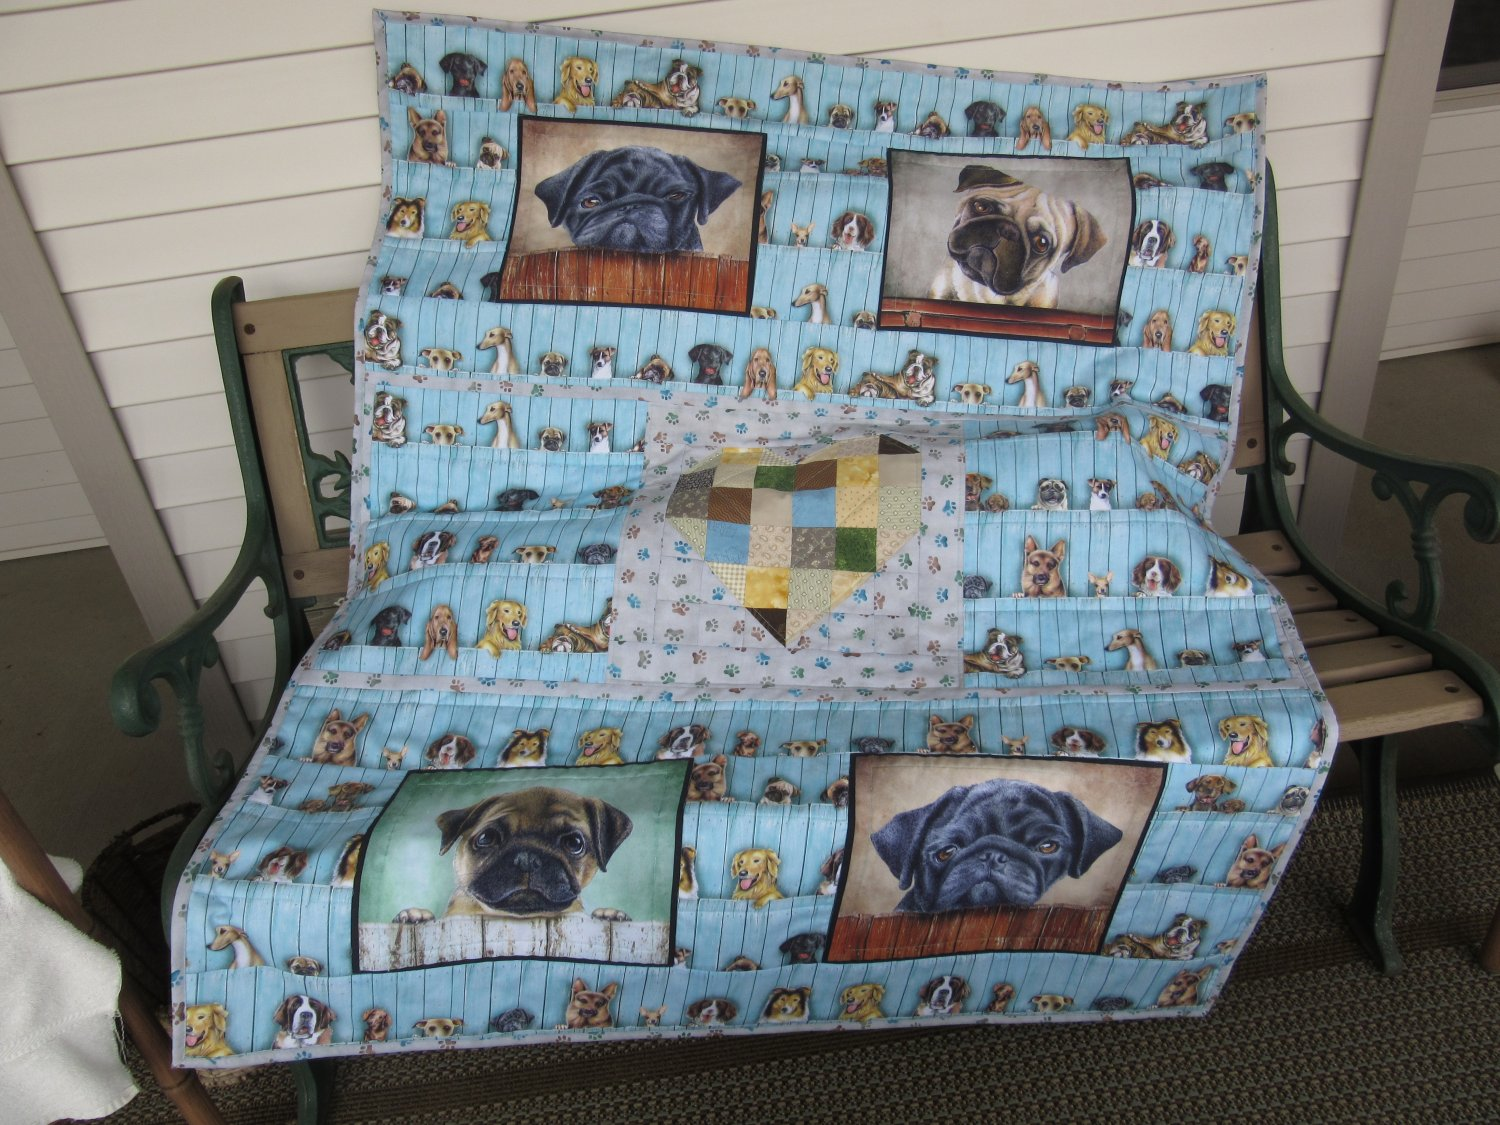 Small Quilt Dog Lovers Unique Patchwork Design - Handmade Cotton for Lap or Nap